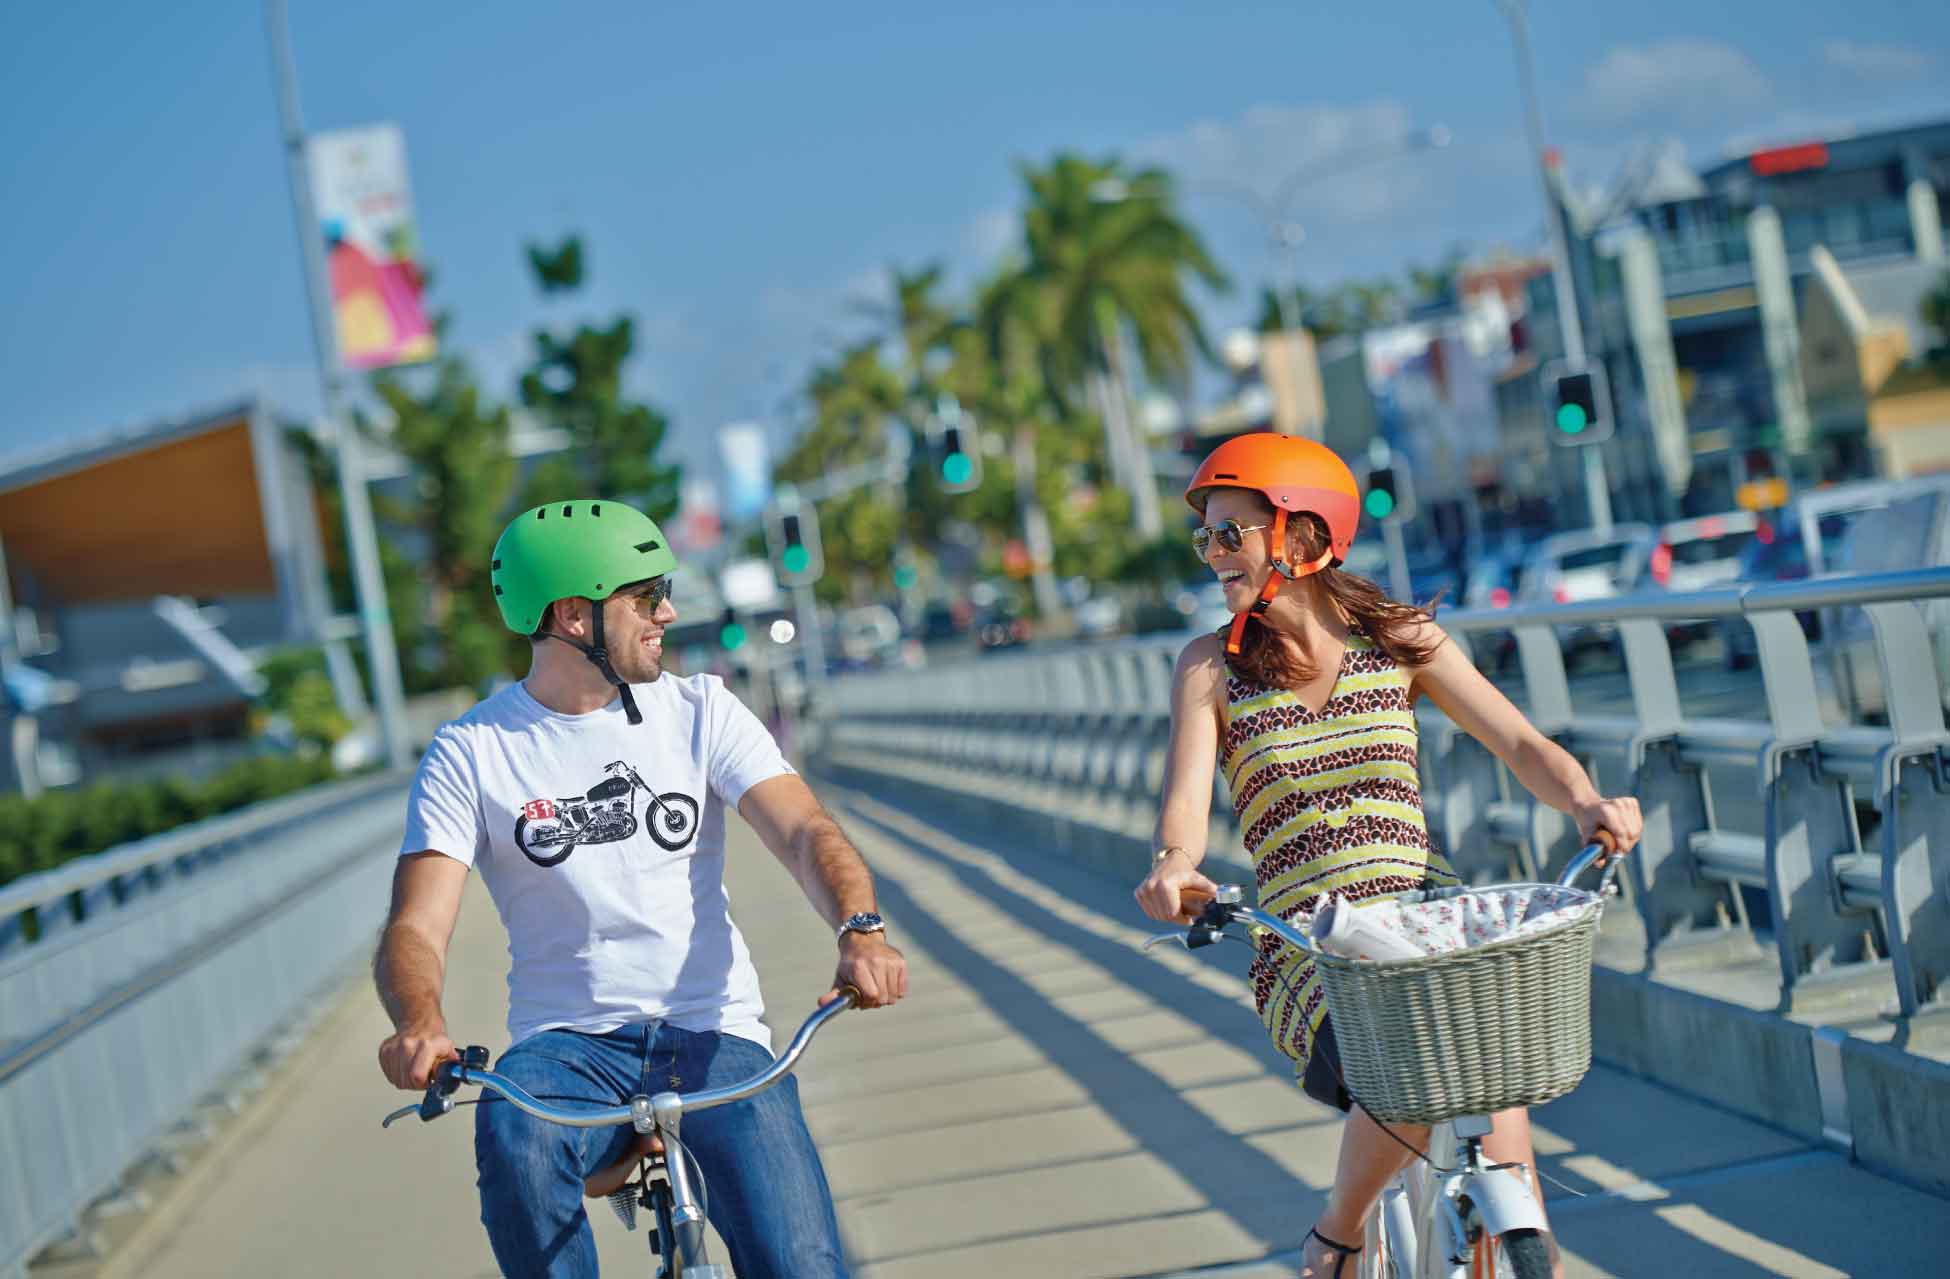 Ebike Hire Brisbane - Happy Cycling Couple